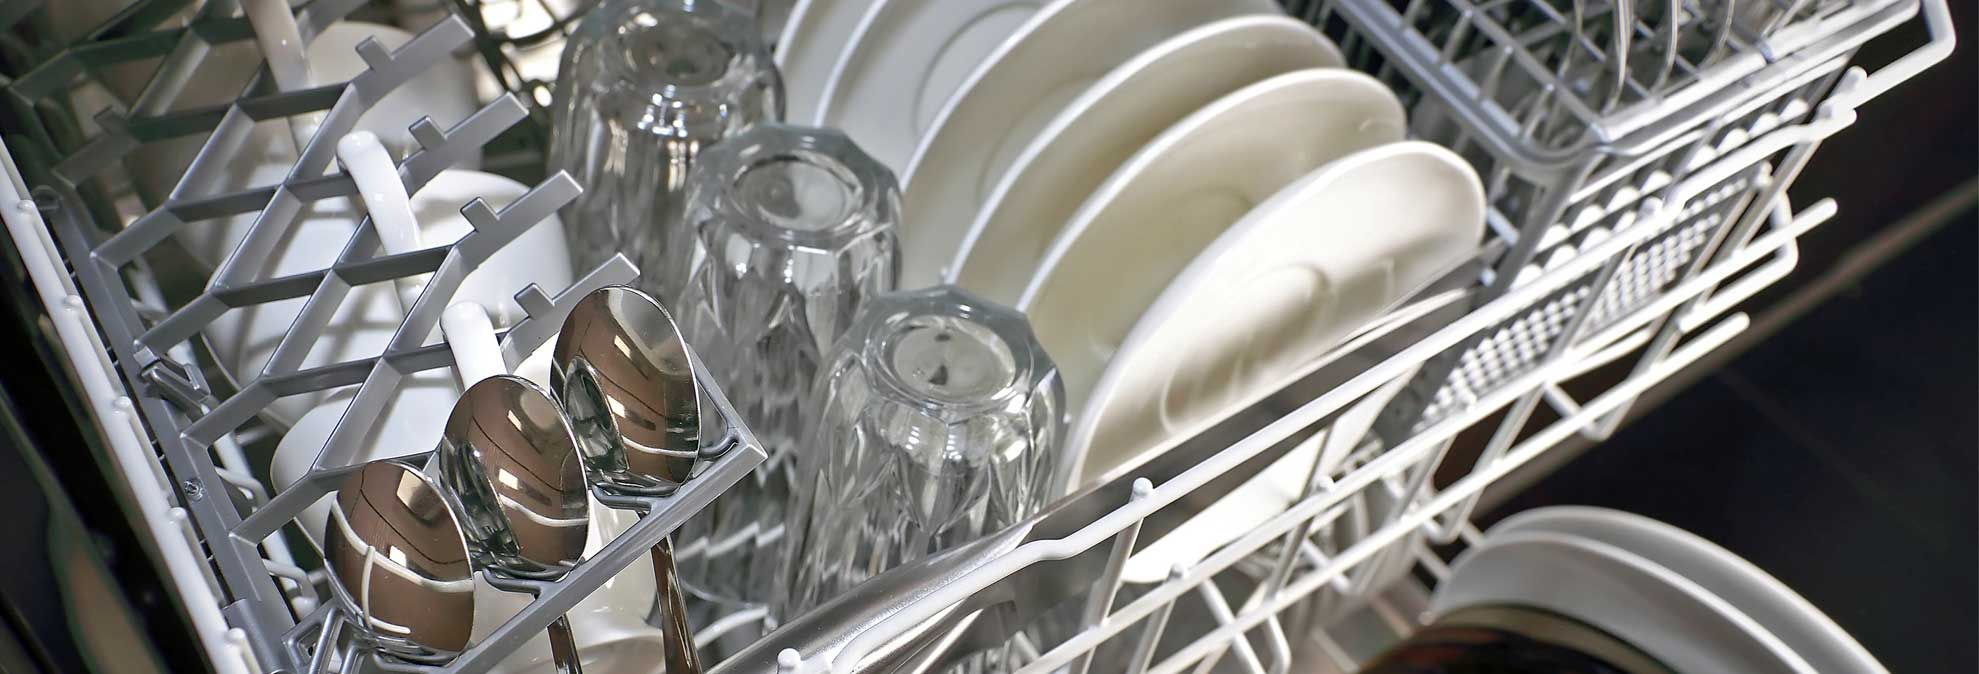 Consumer Reports Tests Reveal The Best Dishwashers Of 2018 At A Variety Of Prices This Roundup Covers Standout Mo Best Dishwasher Dishwasher Household Items